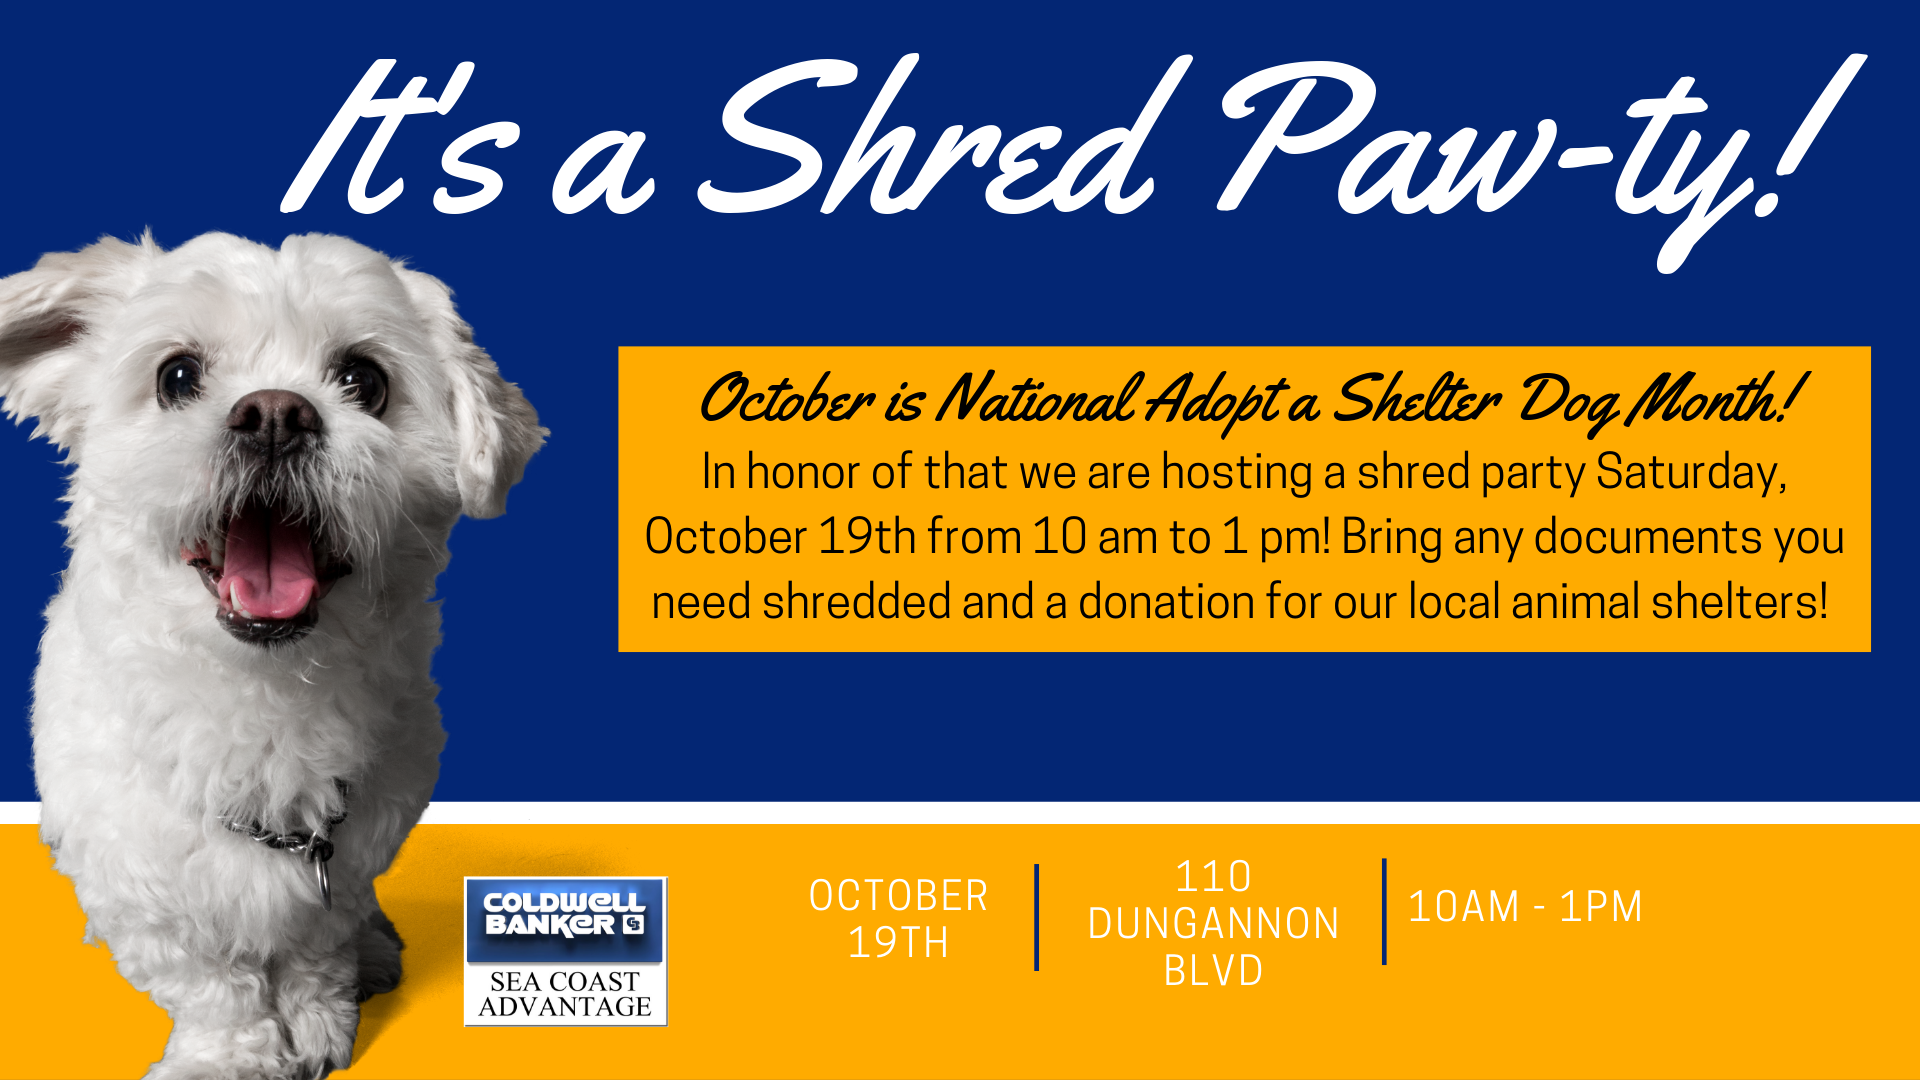 Shred Pawty - Shred Party and Local Animal Shelter Drive - Wilmington NC